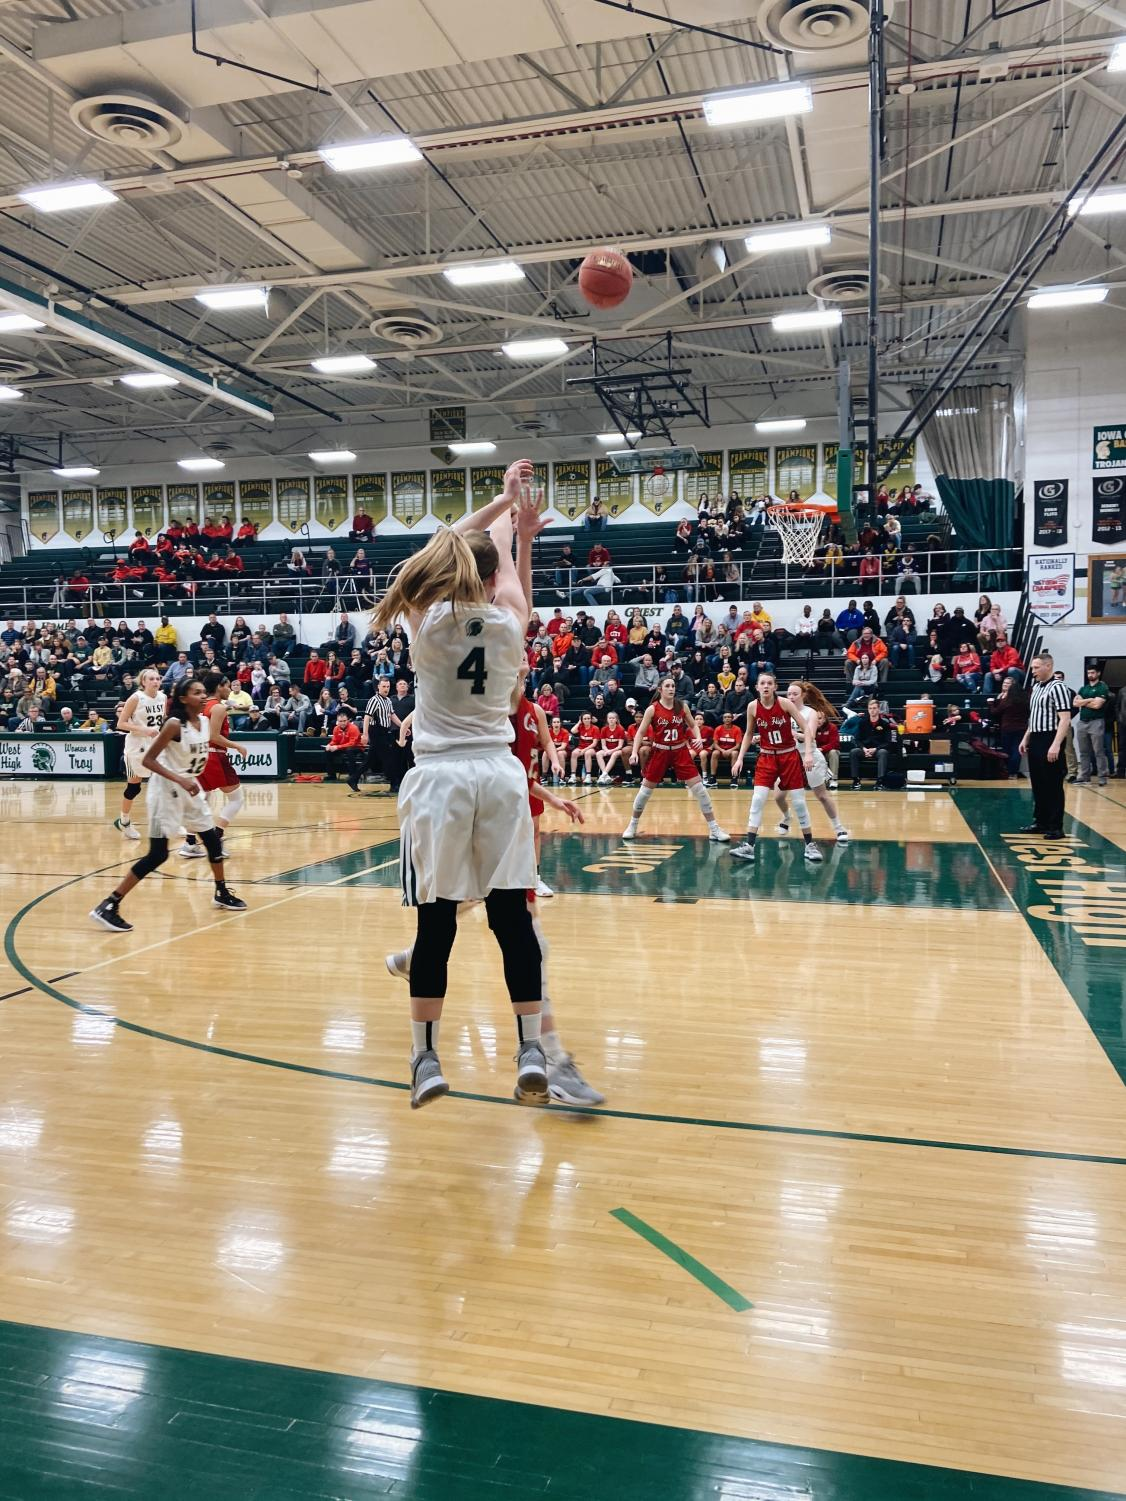 Anna+Prouty+%E2%80%9823+%28%234%29+attempts+a+three-point+shot+at+this+year%E2%80%99s+home+game+against+City%E2%80%99s+Varsity+Girls+Basketball+Team.+%28event+action+%231%29%0A%0A